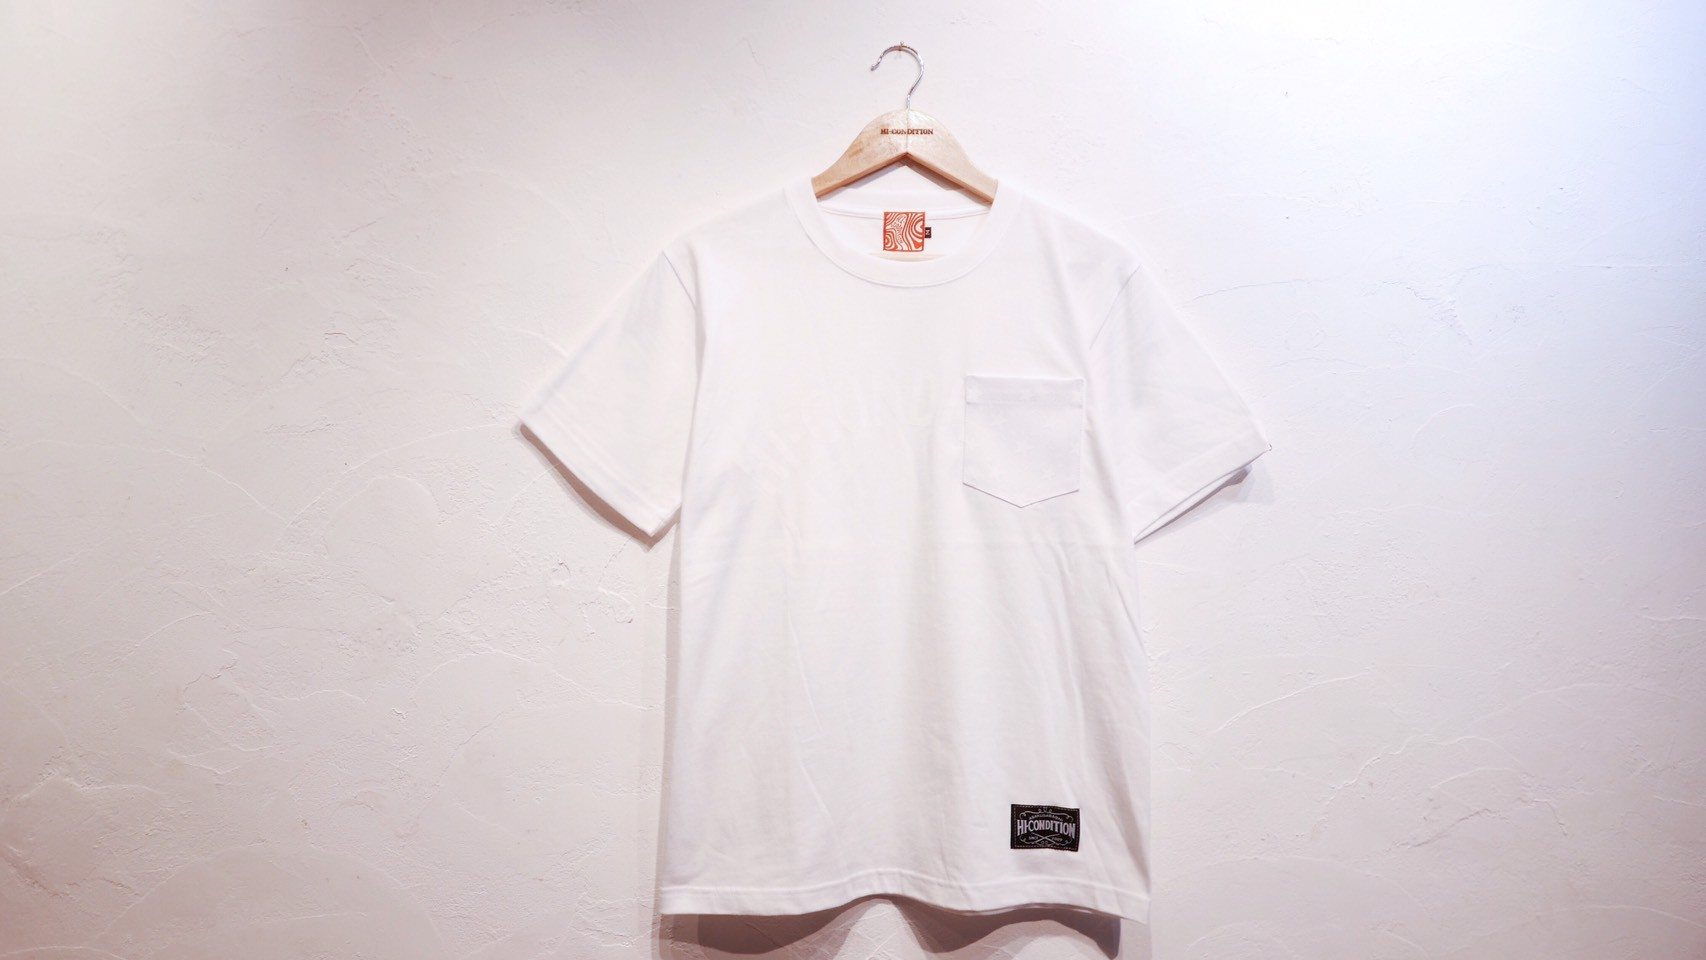 WHITE POCKET Tee & BASIC WHITE Tee